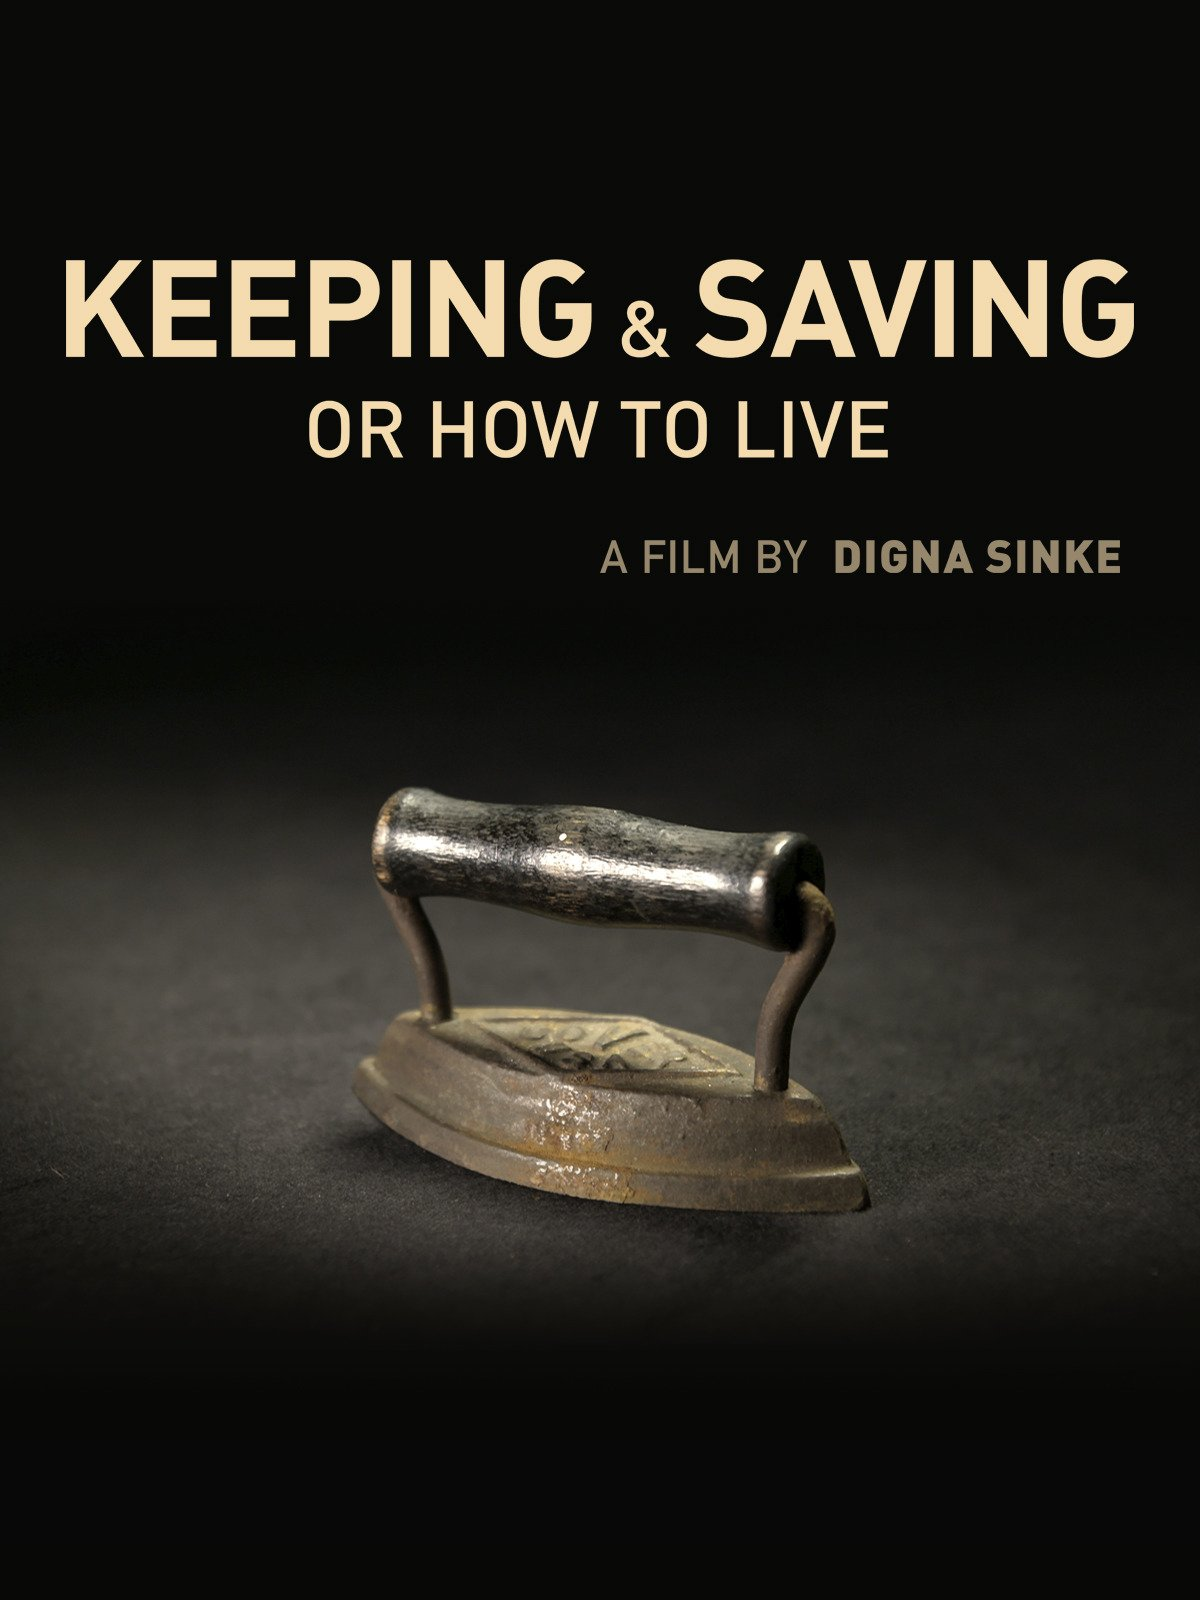 Keeping and Saving or How to Live